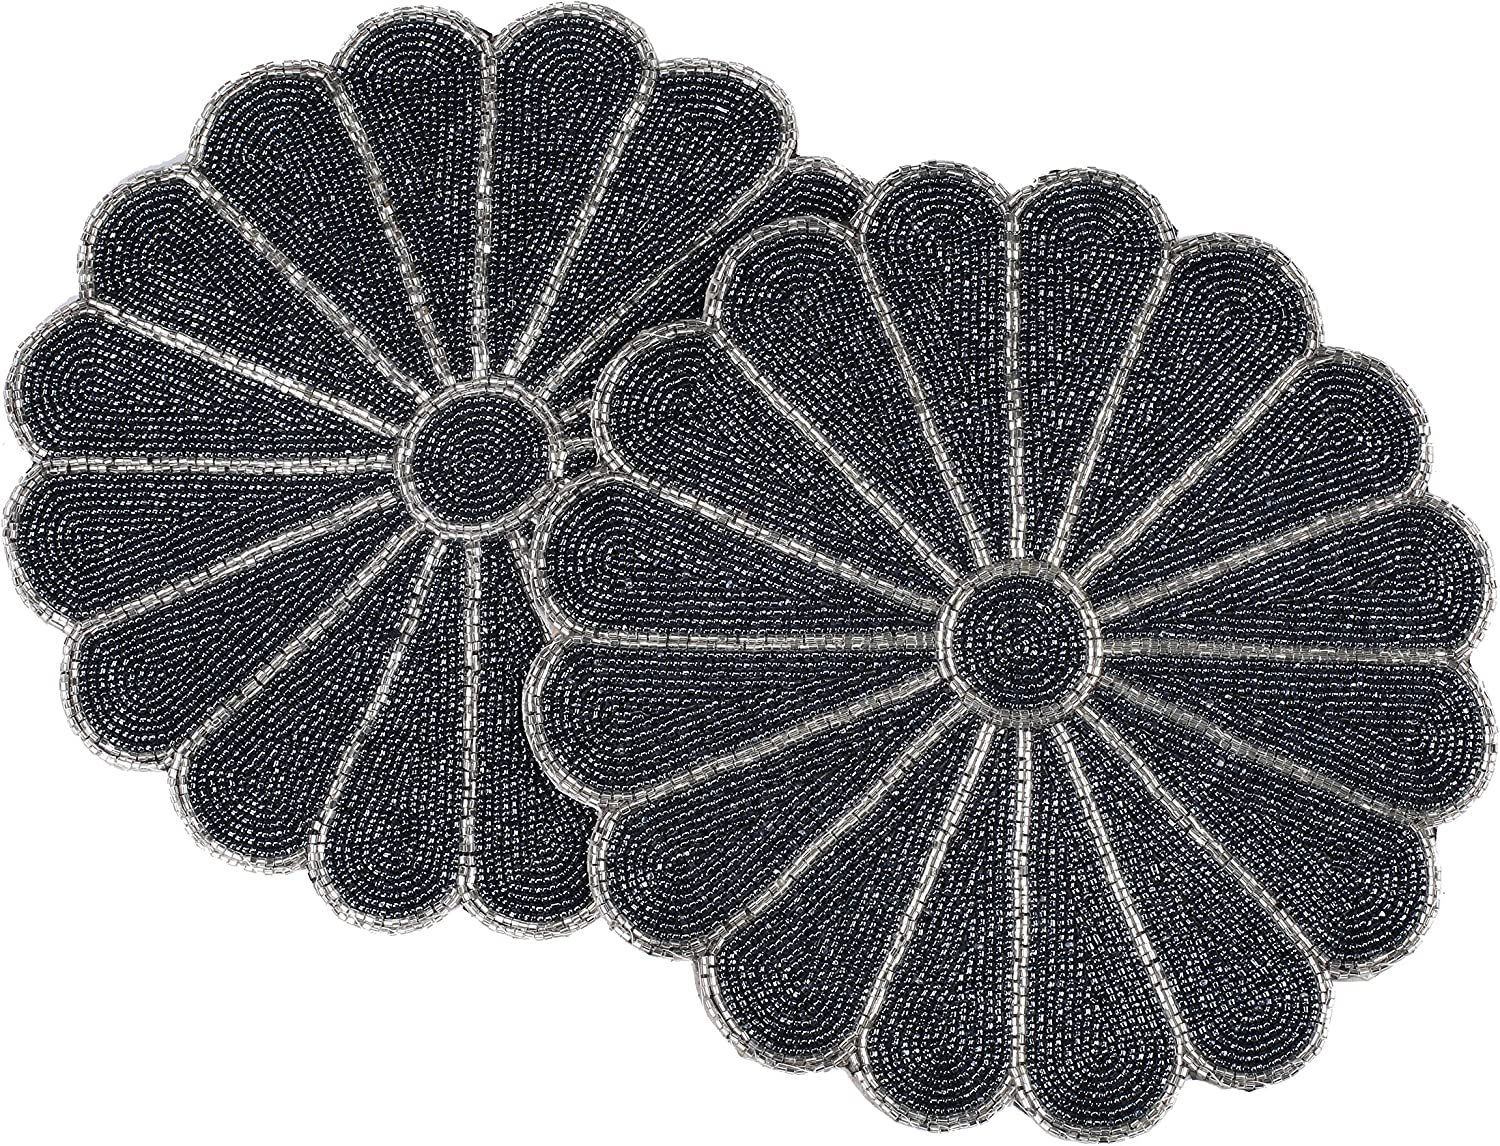 Alpha Living Home Beaded Scallop Placemats for Dining Table - Pack of 2 Measure 13 inches Beaded Placemats Round for Gathering, Occasional Decoration and Family Parties Celebrations - Navy/Silver